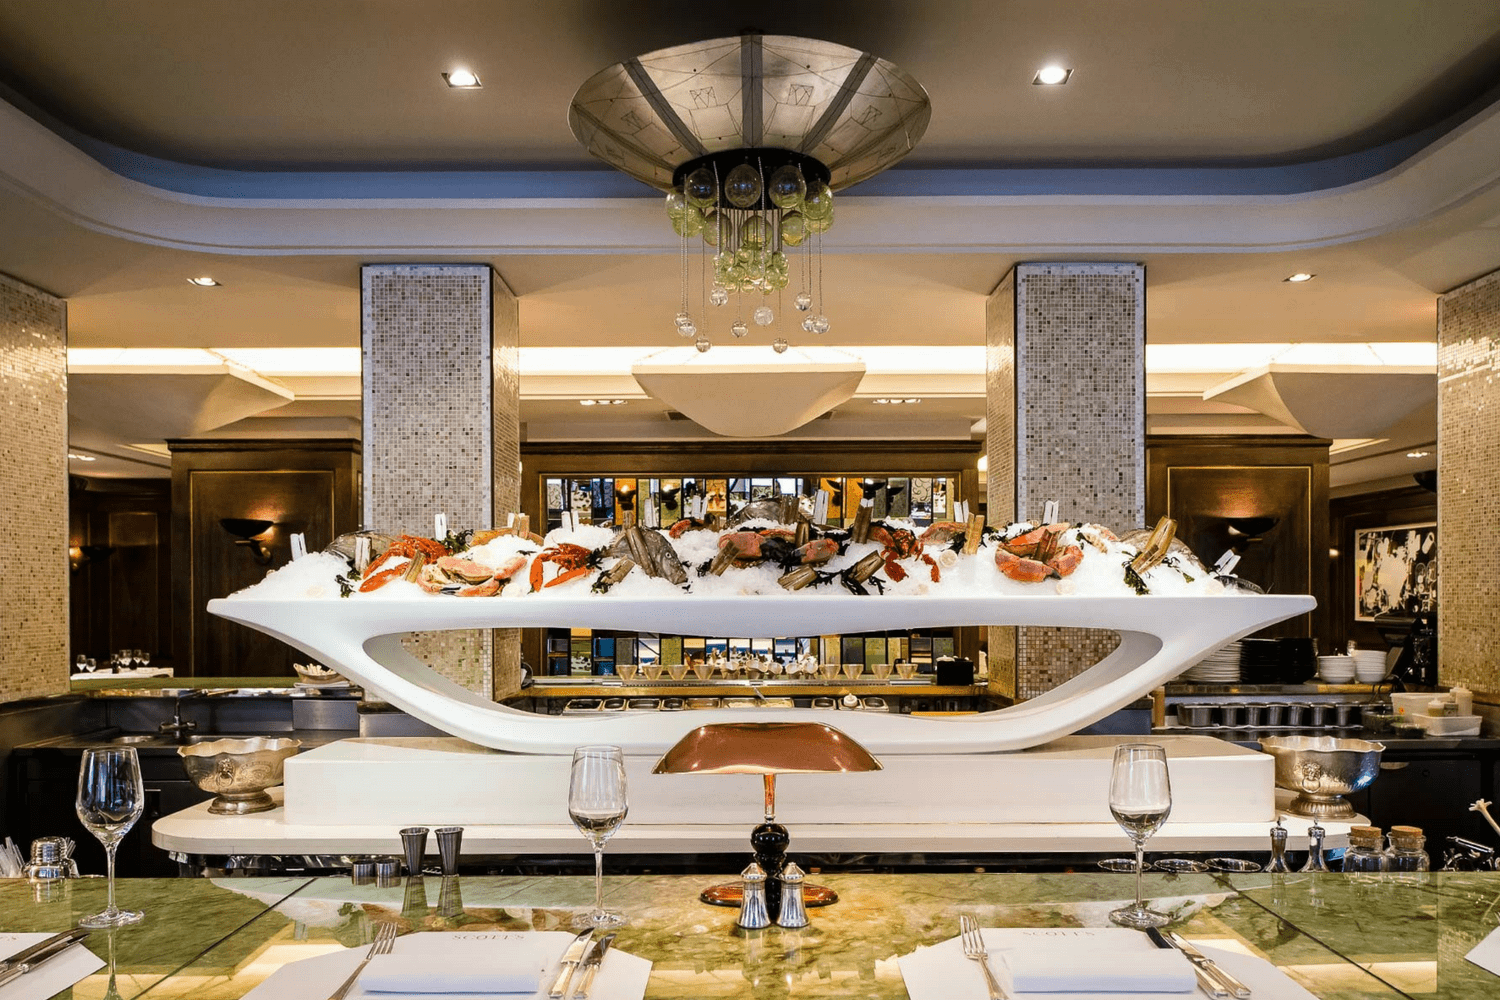 The Oyster and Champagne Bar at Scott's, a Fish and Seafood Restaurant in Mayfair